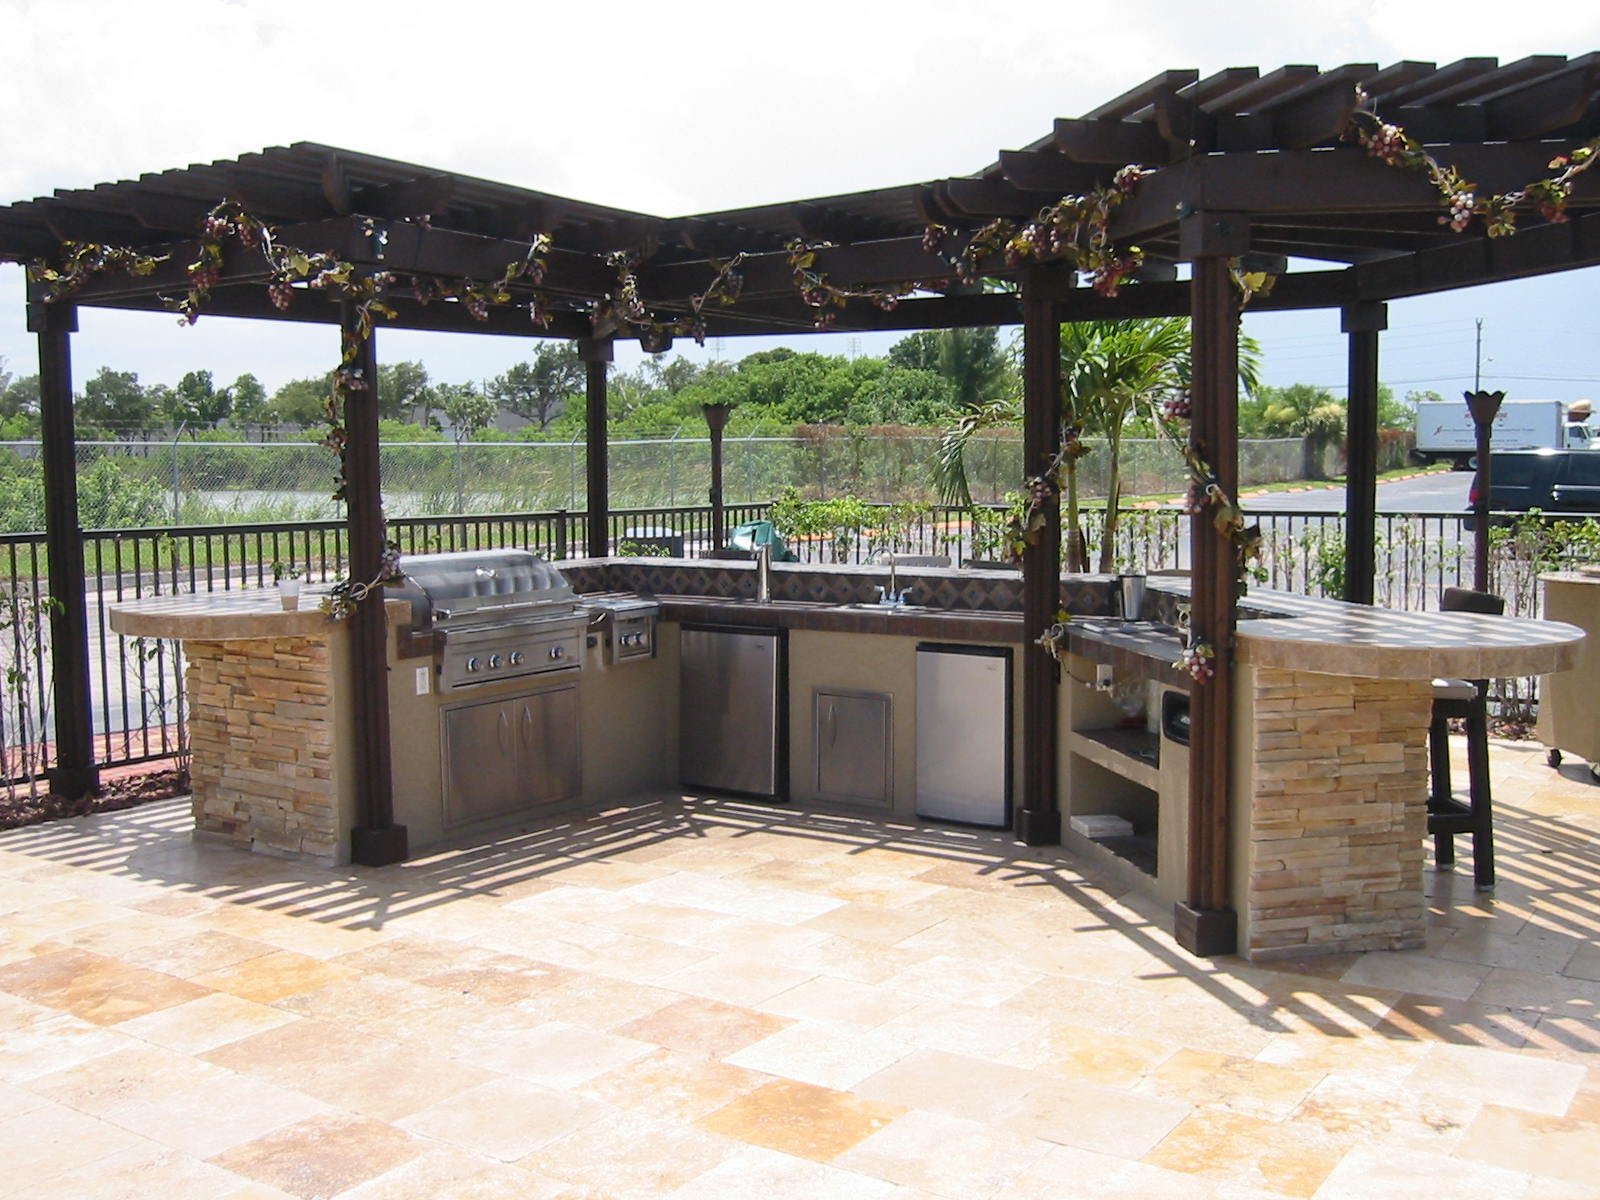 Outdoor Kitchen Gas Grill Custom Outdoor Kitchen Design In A Outdoor Room With Cover Gas